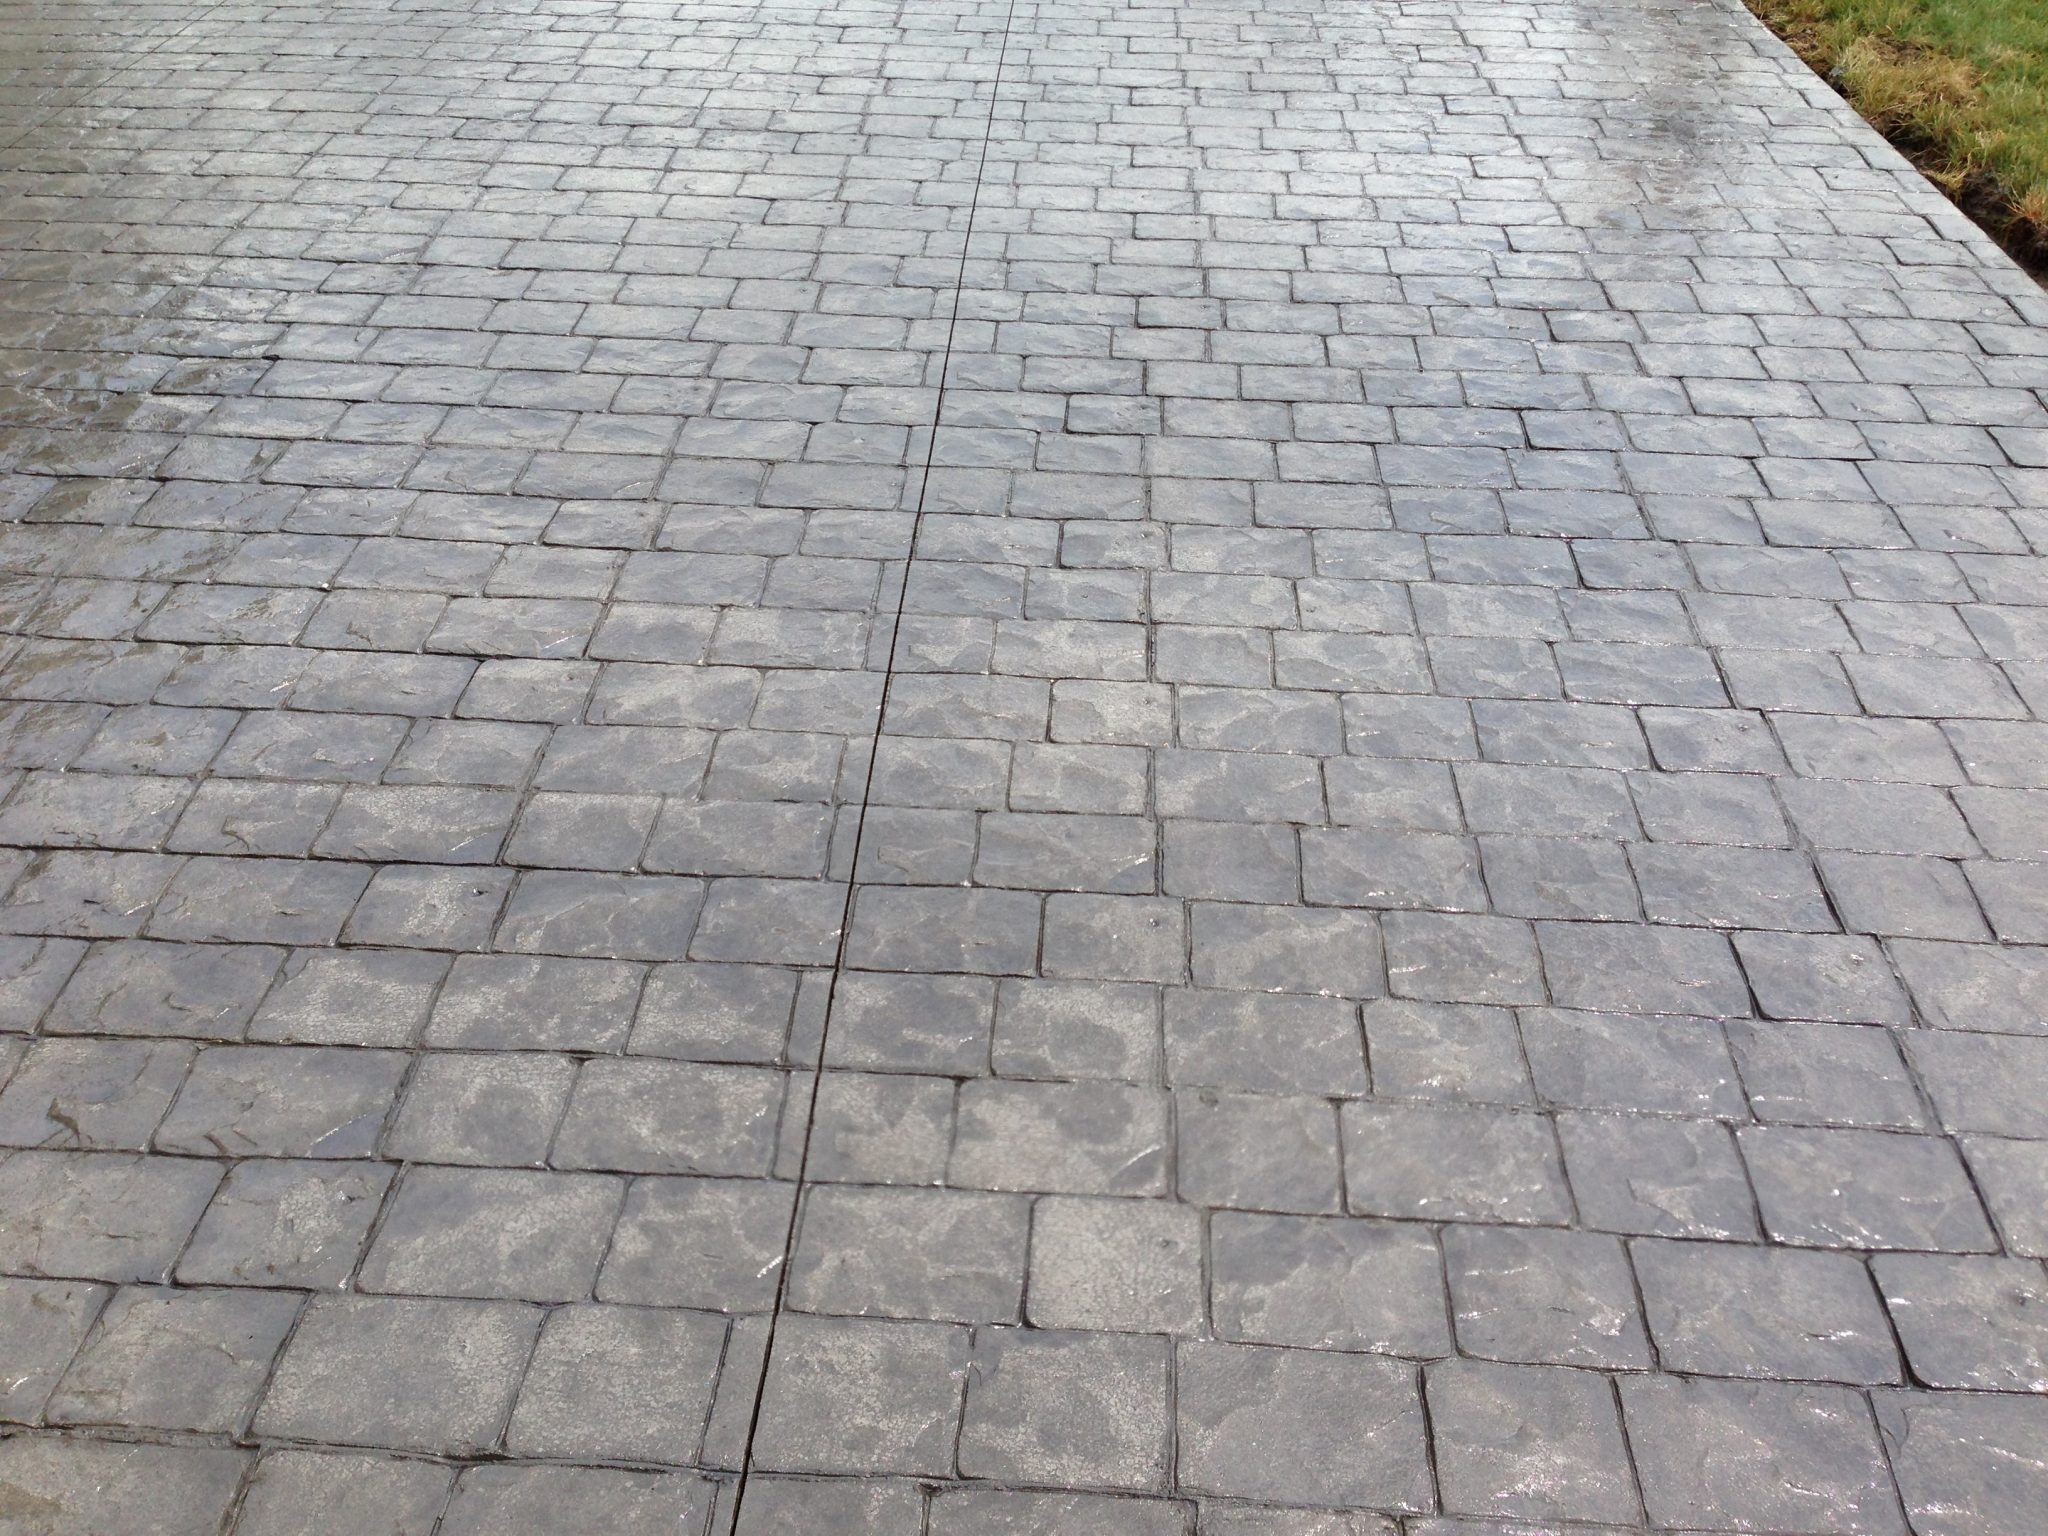 ... london cobblestone patio in stamped concrete. ... ADOQBXM